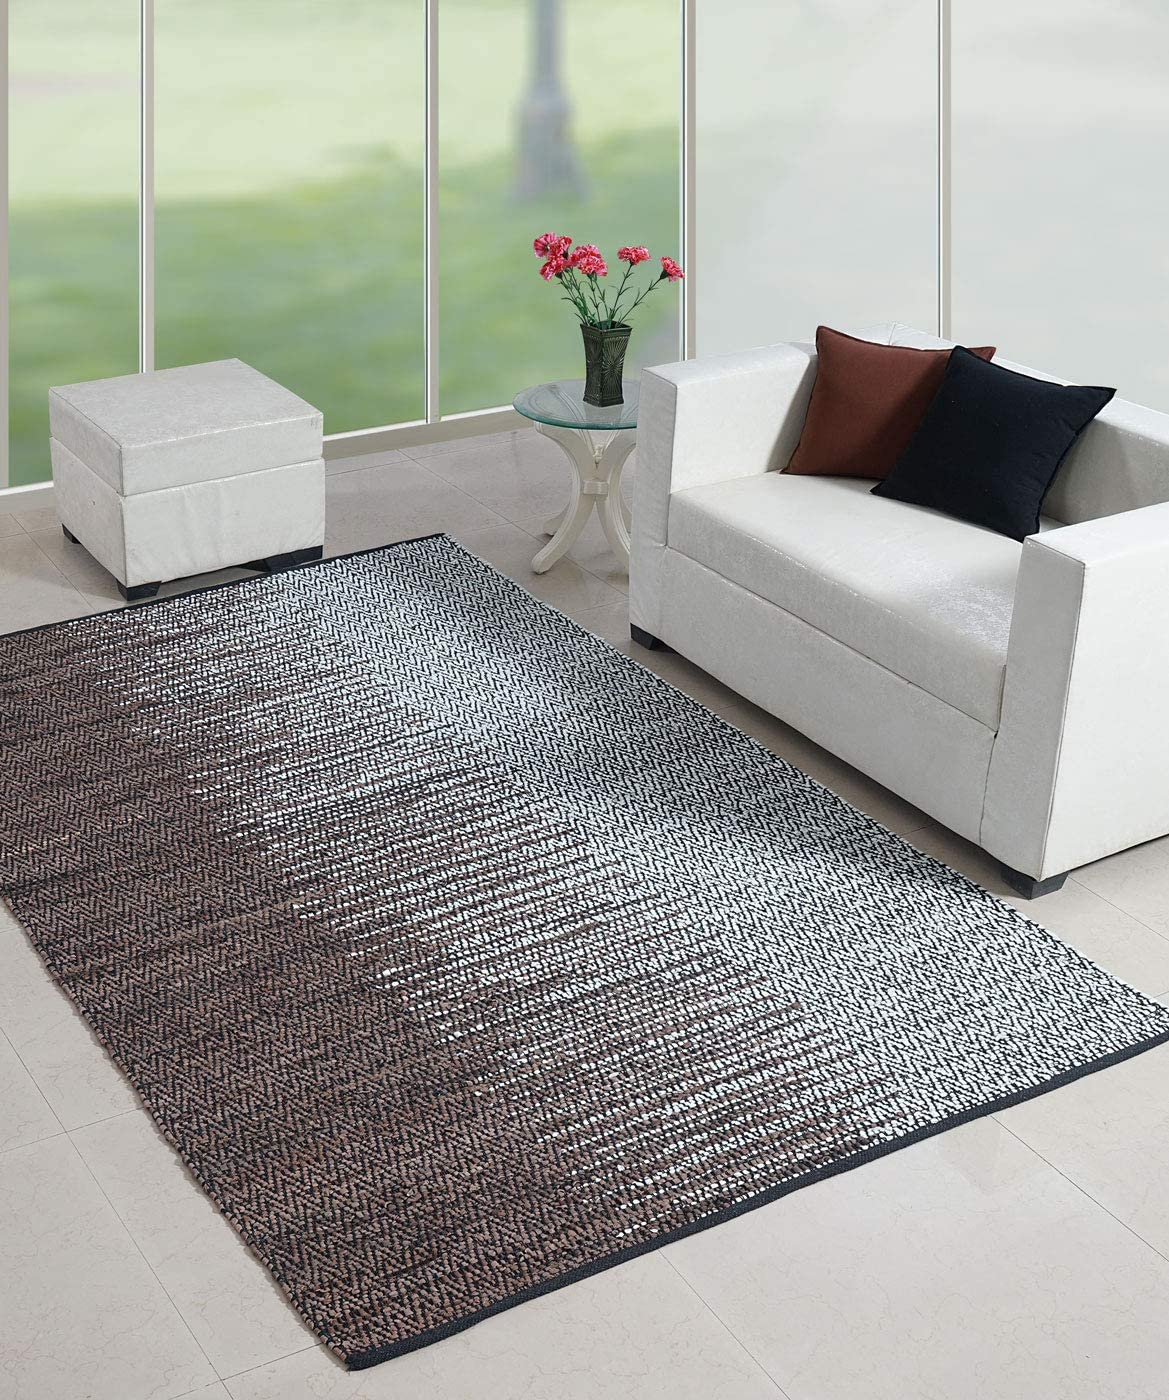 Recycled Leather Handmade Contemporary Premium Vintage Area Rug, Perfect for Bed Room, Living Room, Kitchen, Kids Room, Loft, Gaming Zone, Office, 5X8 Feets Natural Brown